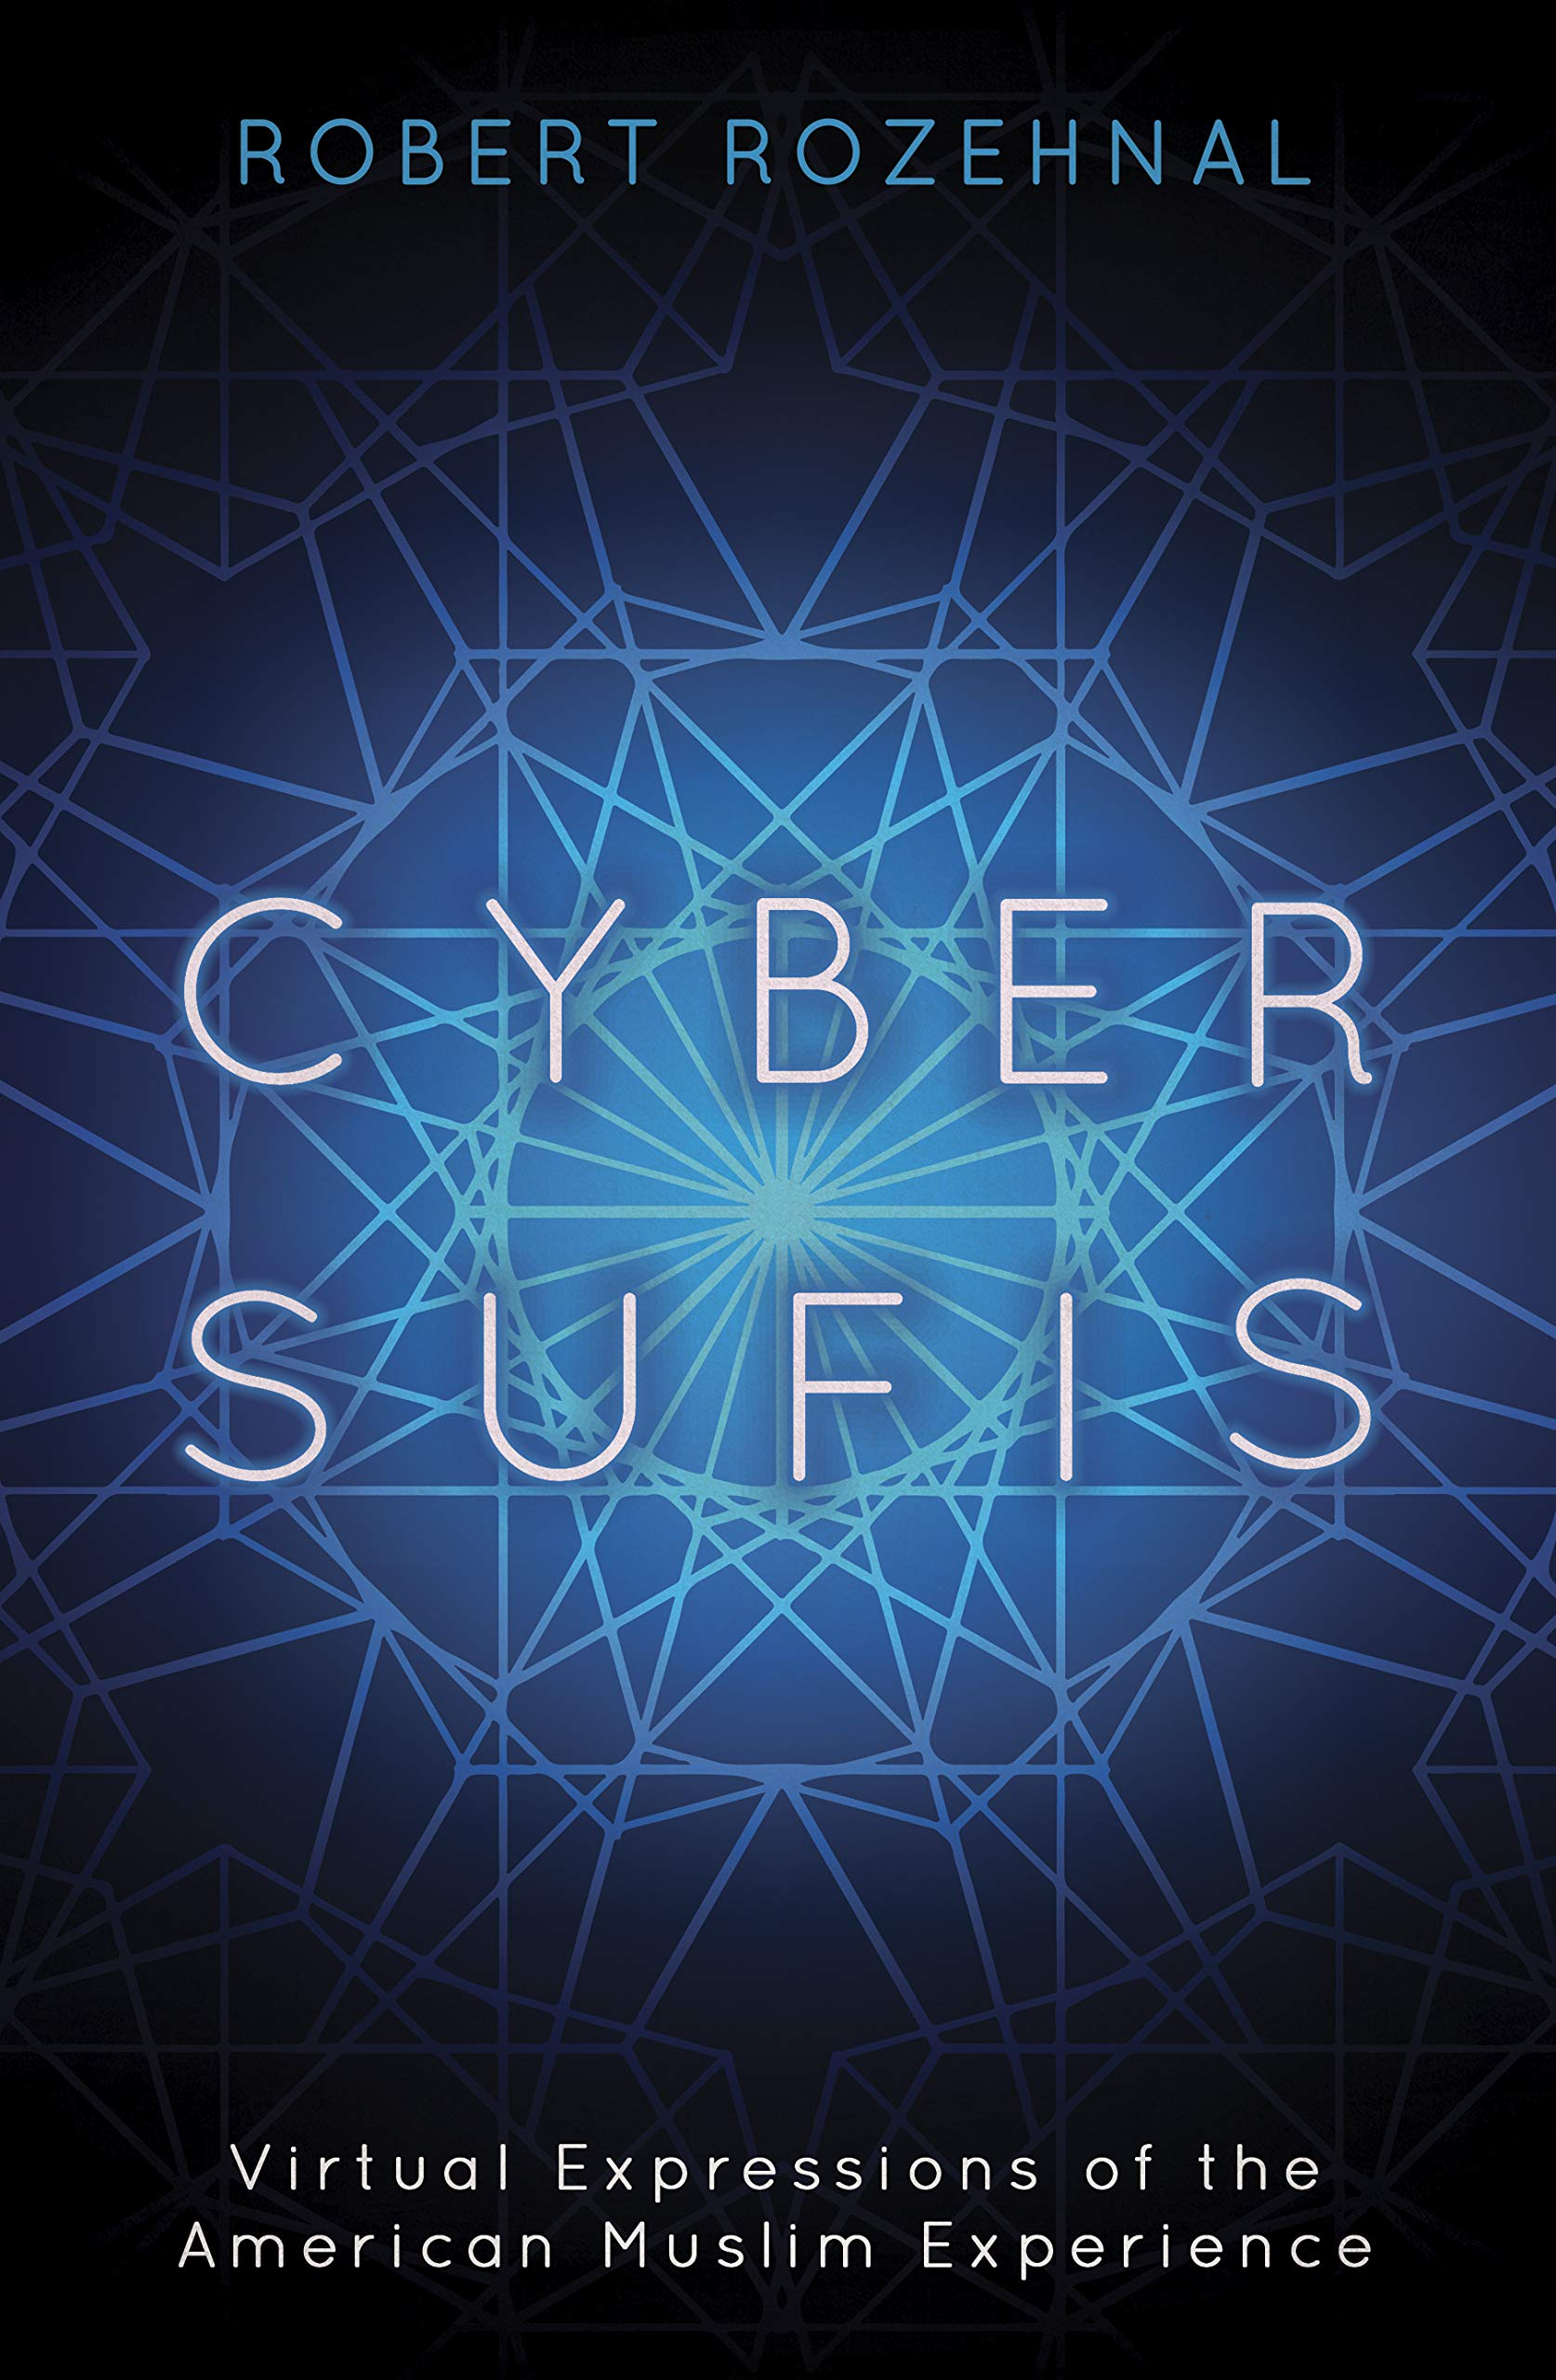 Book cover of Cyber Sufis